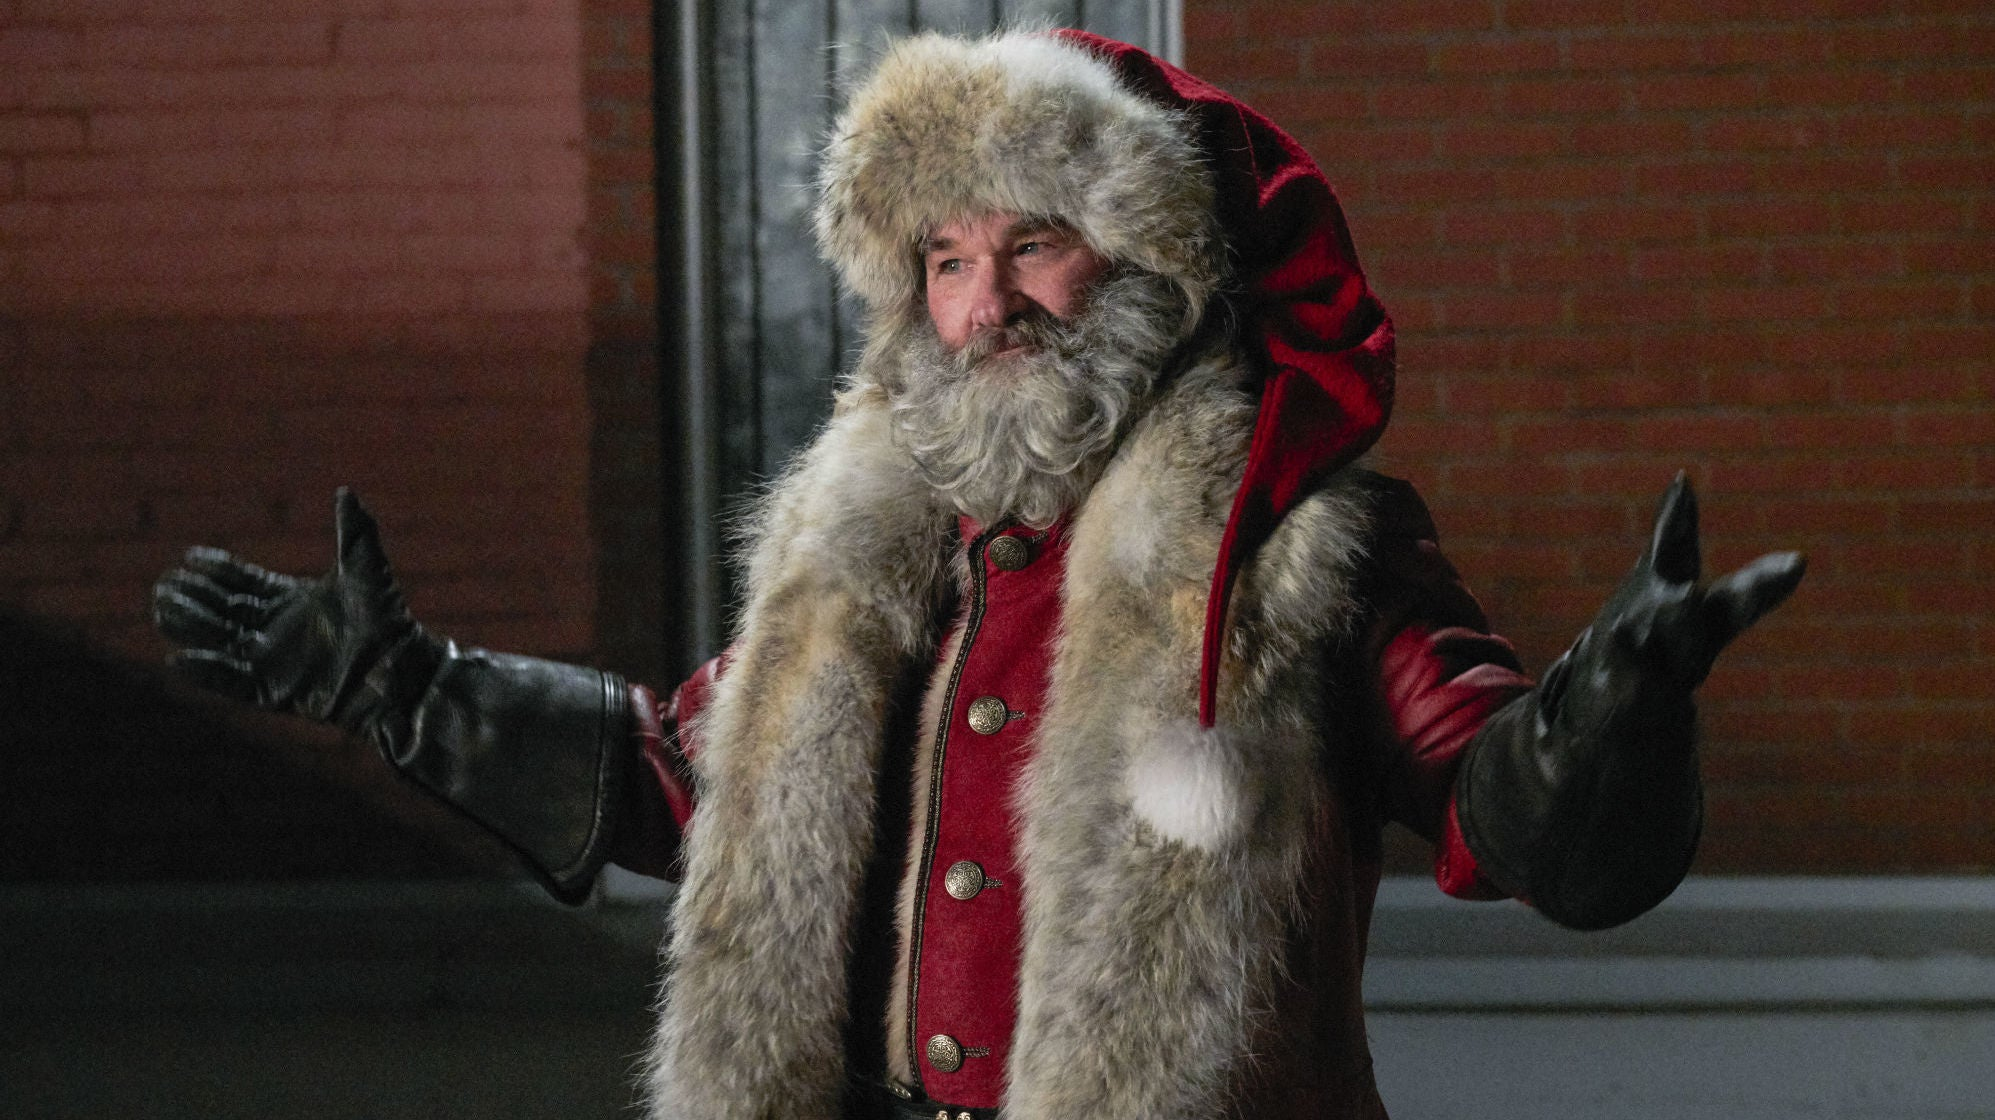 Watch Kurt Russell's Santa Claus Do So Much Crazy Stuff It Won't Fit In A Single Headline